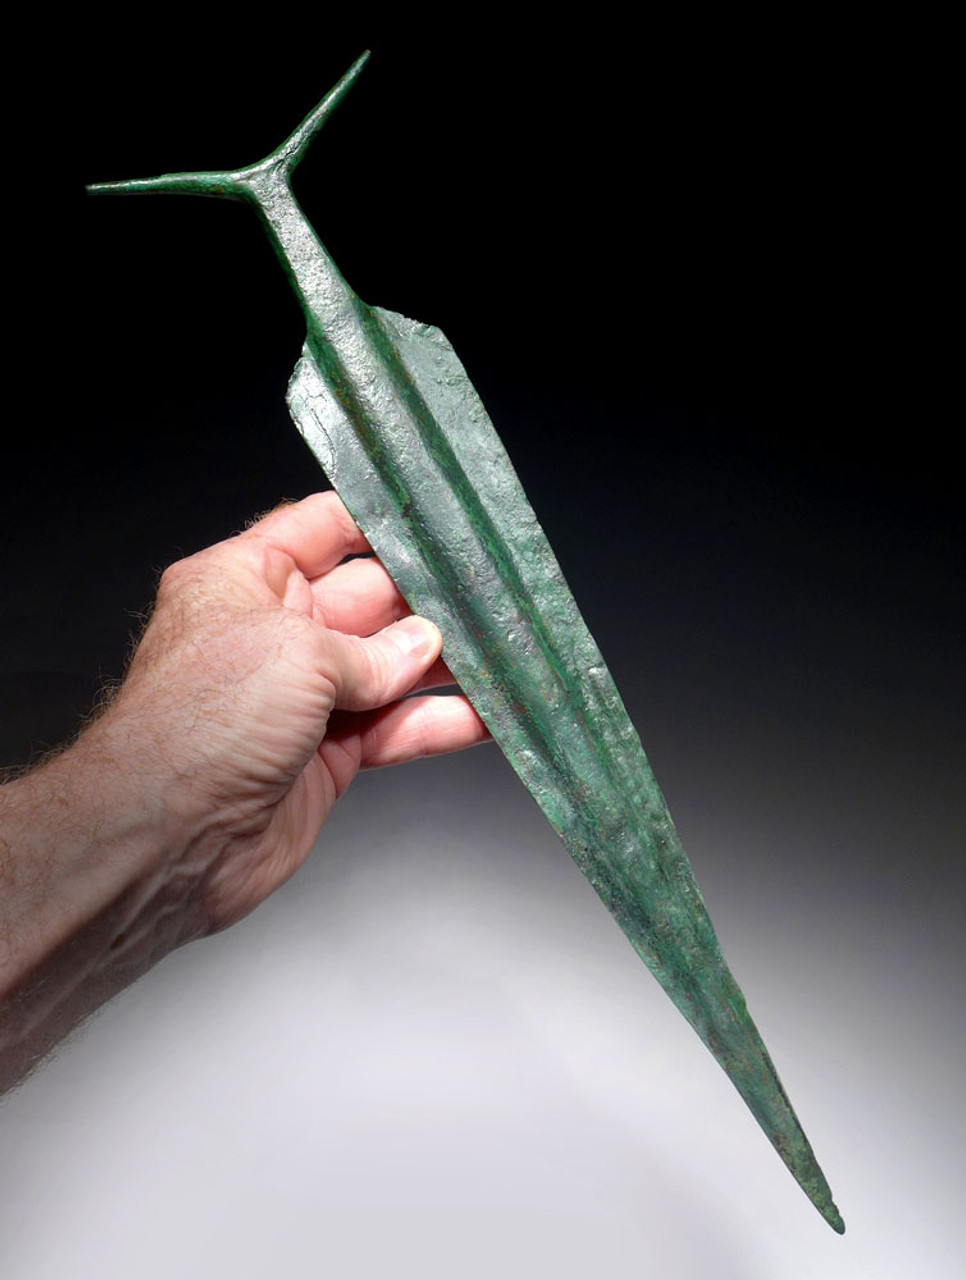 EXTREMELY RARE ANCIENT COPPER ANTENNA SWORD FROM THE HARAPPAN CULTURE OF NORTHERN INDIA *LUR129